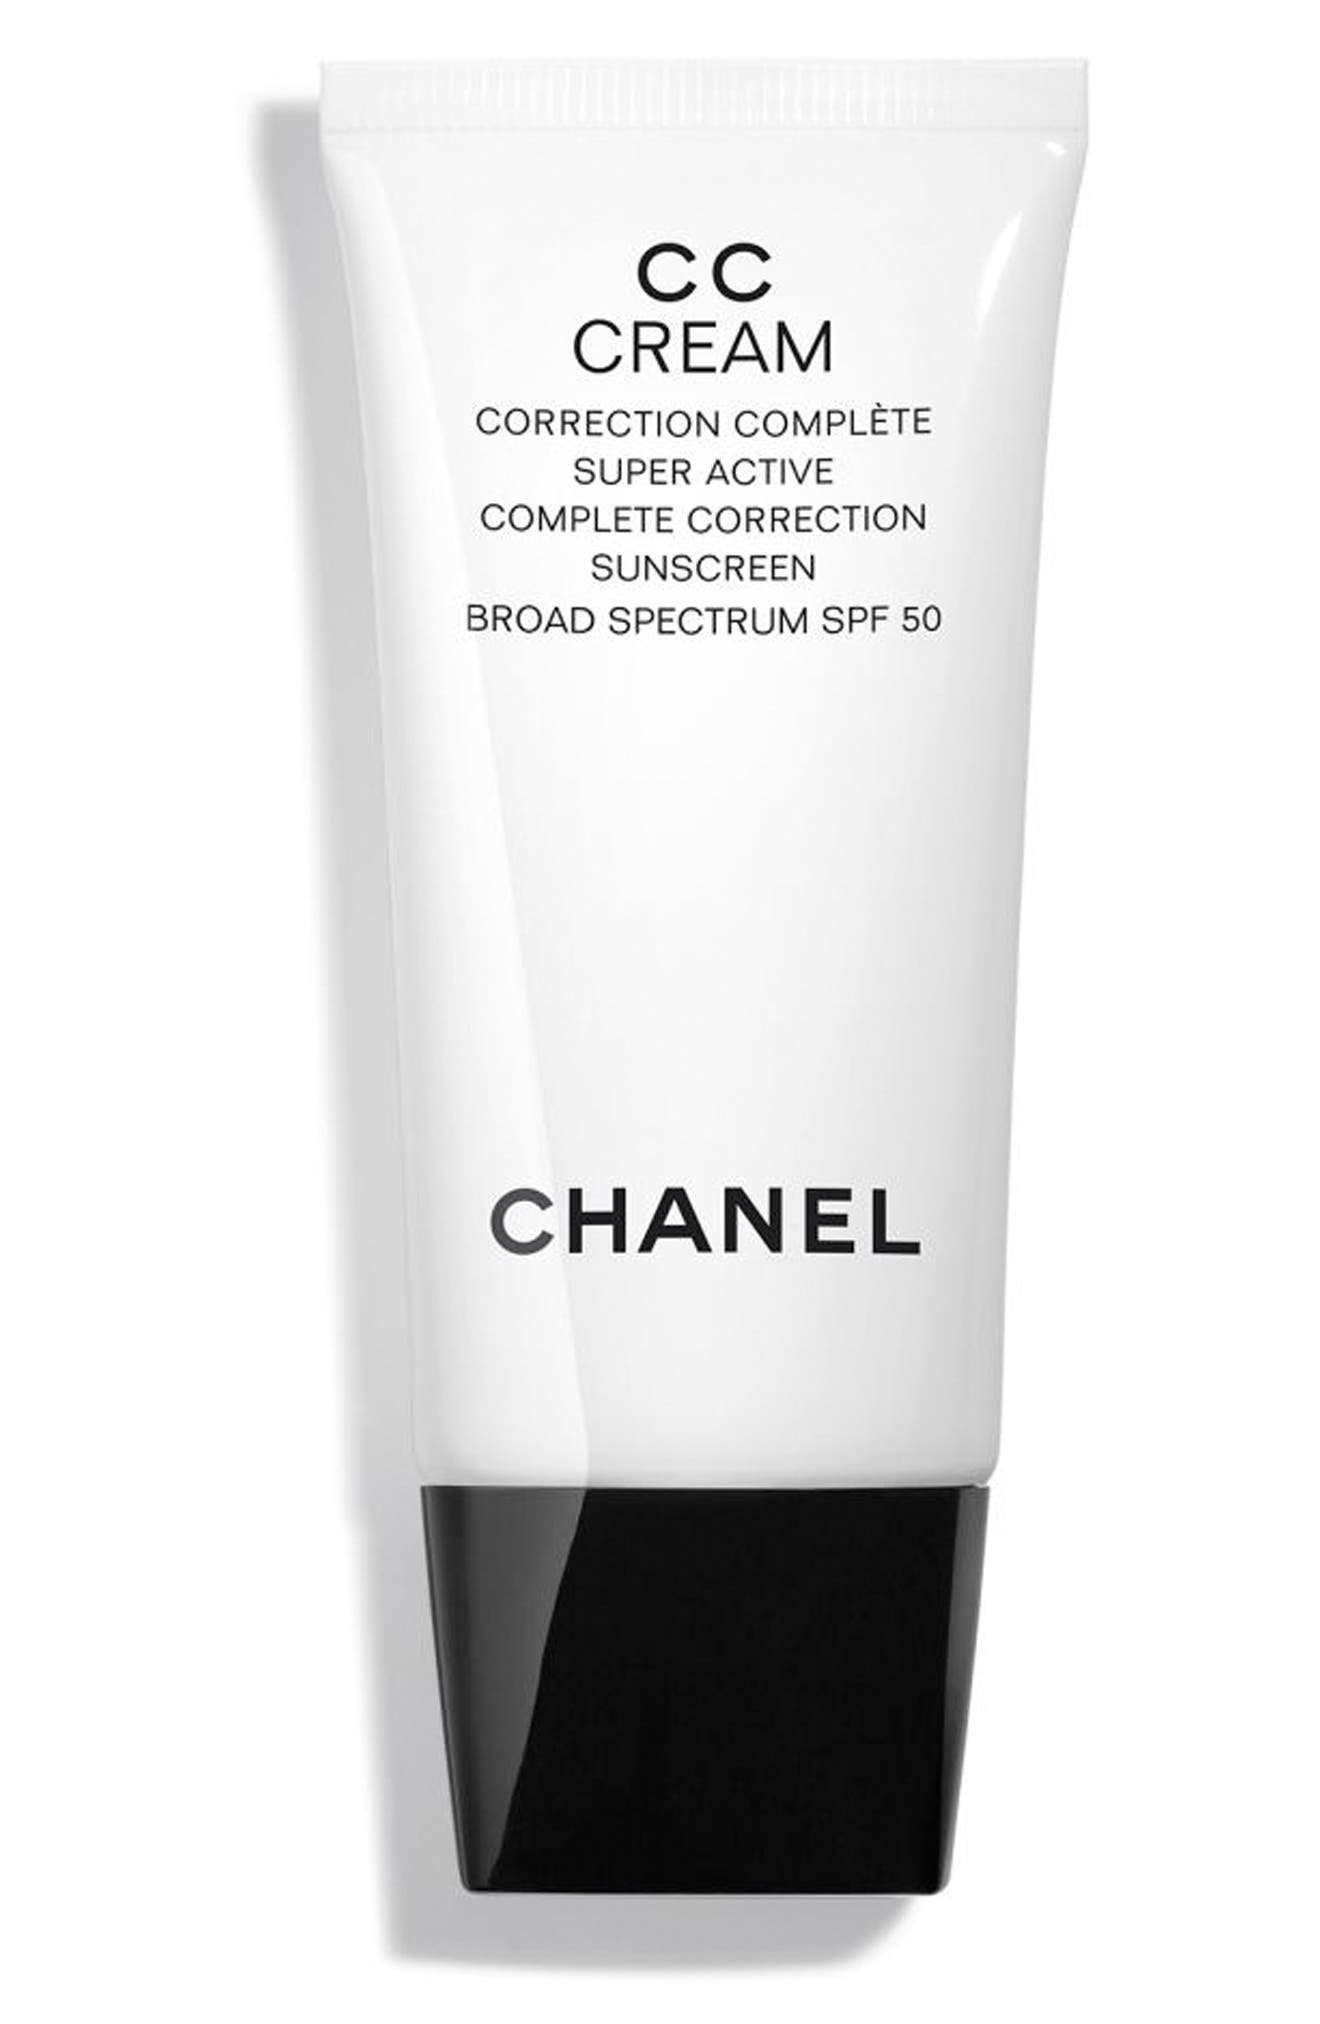 CC CREAM Super Active Correction Complete Sunscreen SPF 50, Main, color, BEIGE 10